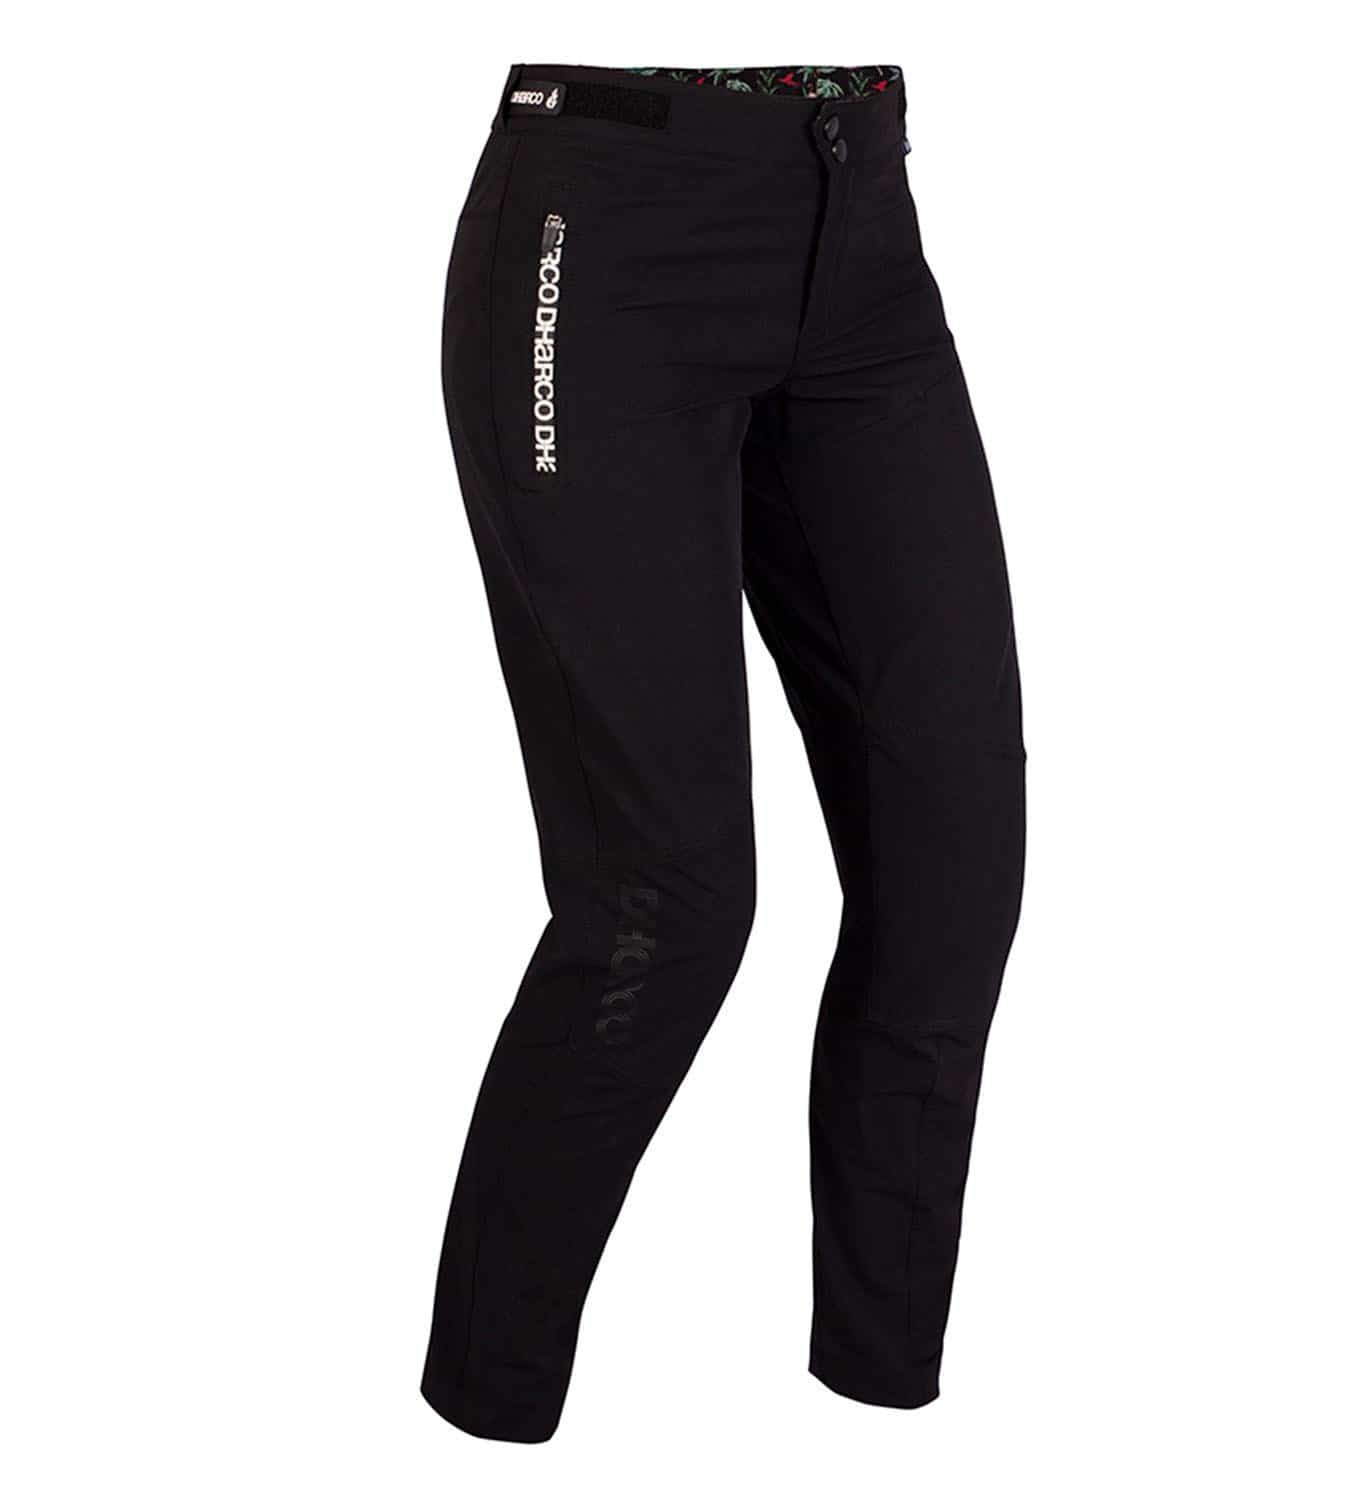 DHaRCO Gravity MTB Pants for Women